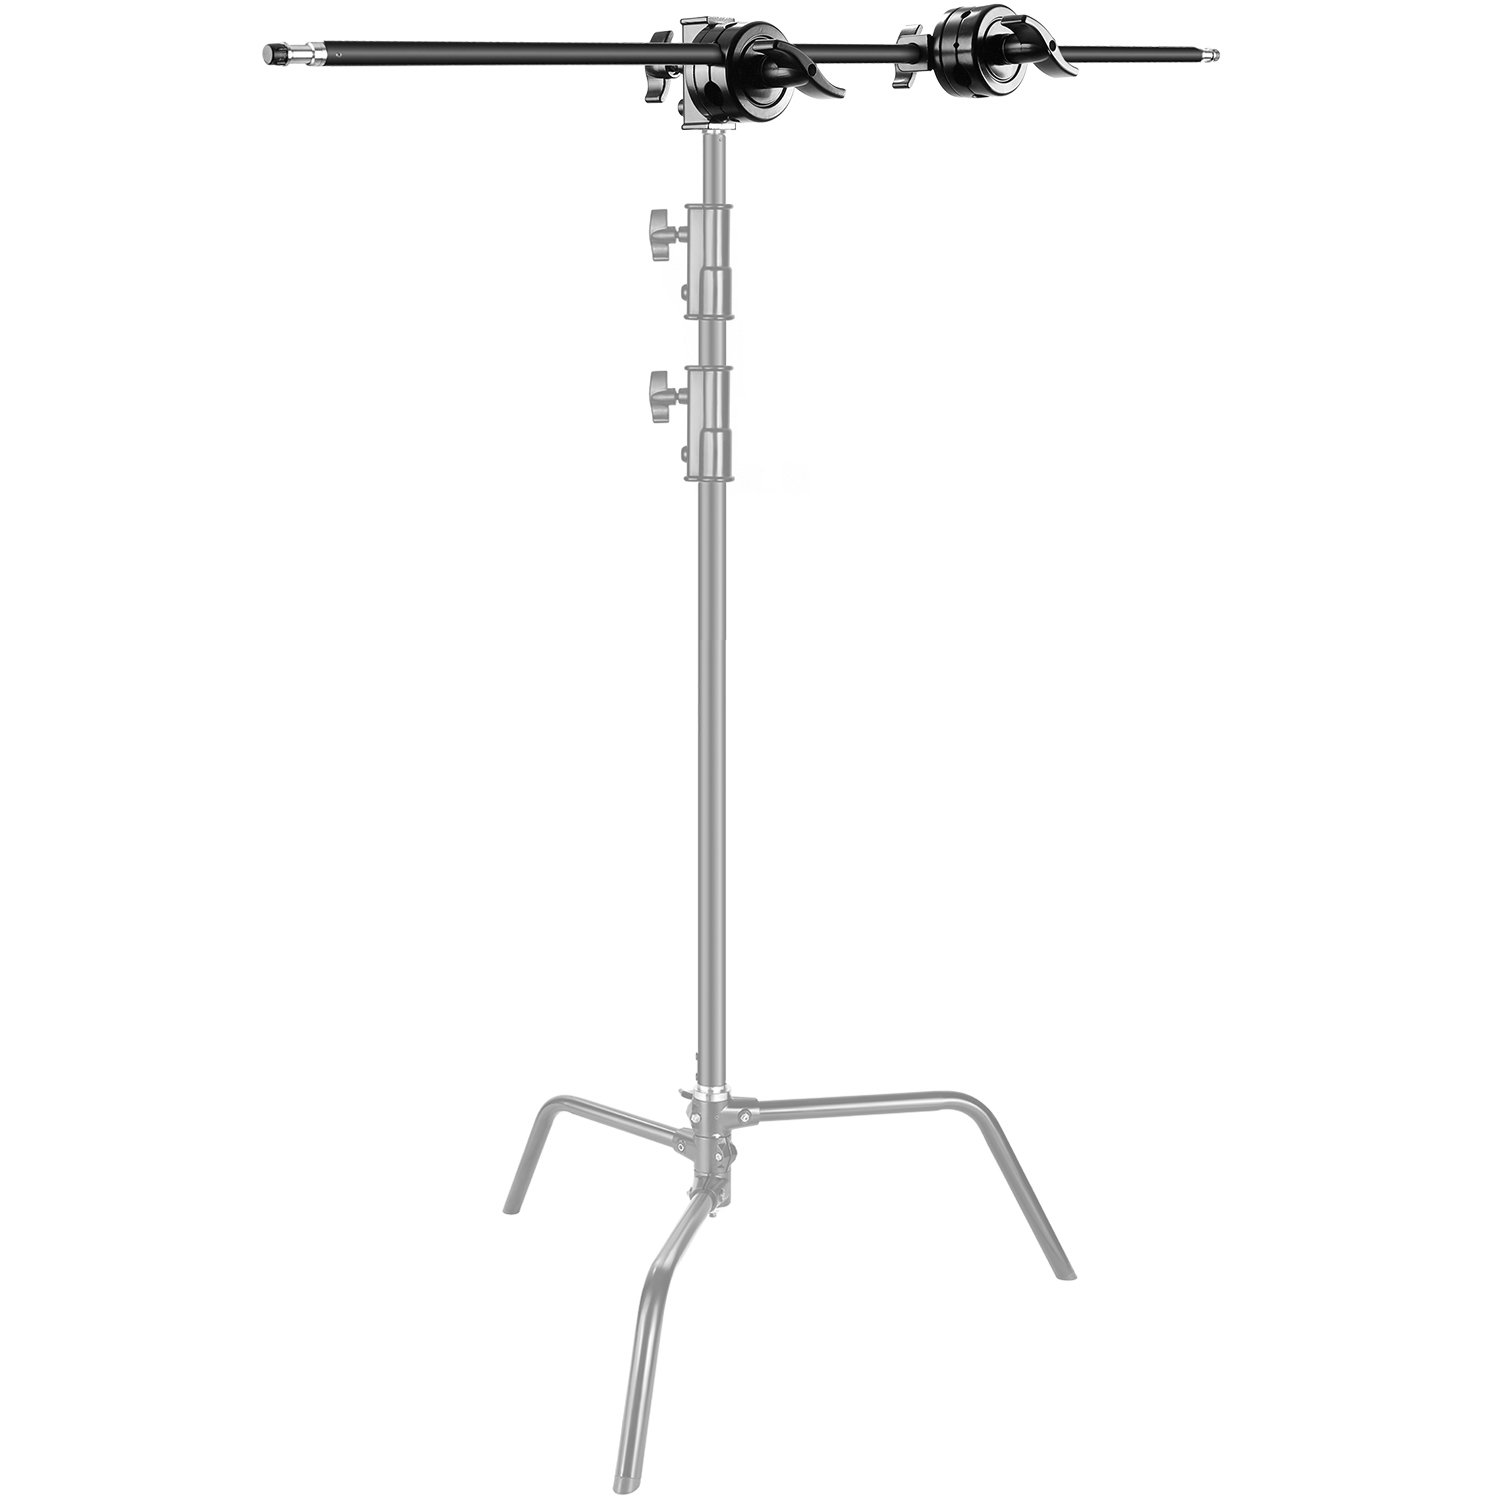 Neewer Extension Grip Arm Boom Arm with 2 Pieces Grip Heads - 42 inches/107 centimeters Aluminum Alloy Construction for Light Stand,Reflector and Other Equipment for Studio Video Photography(Black)